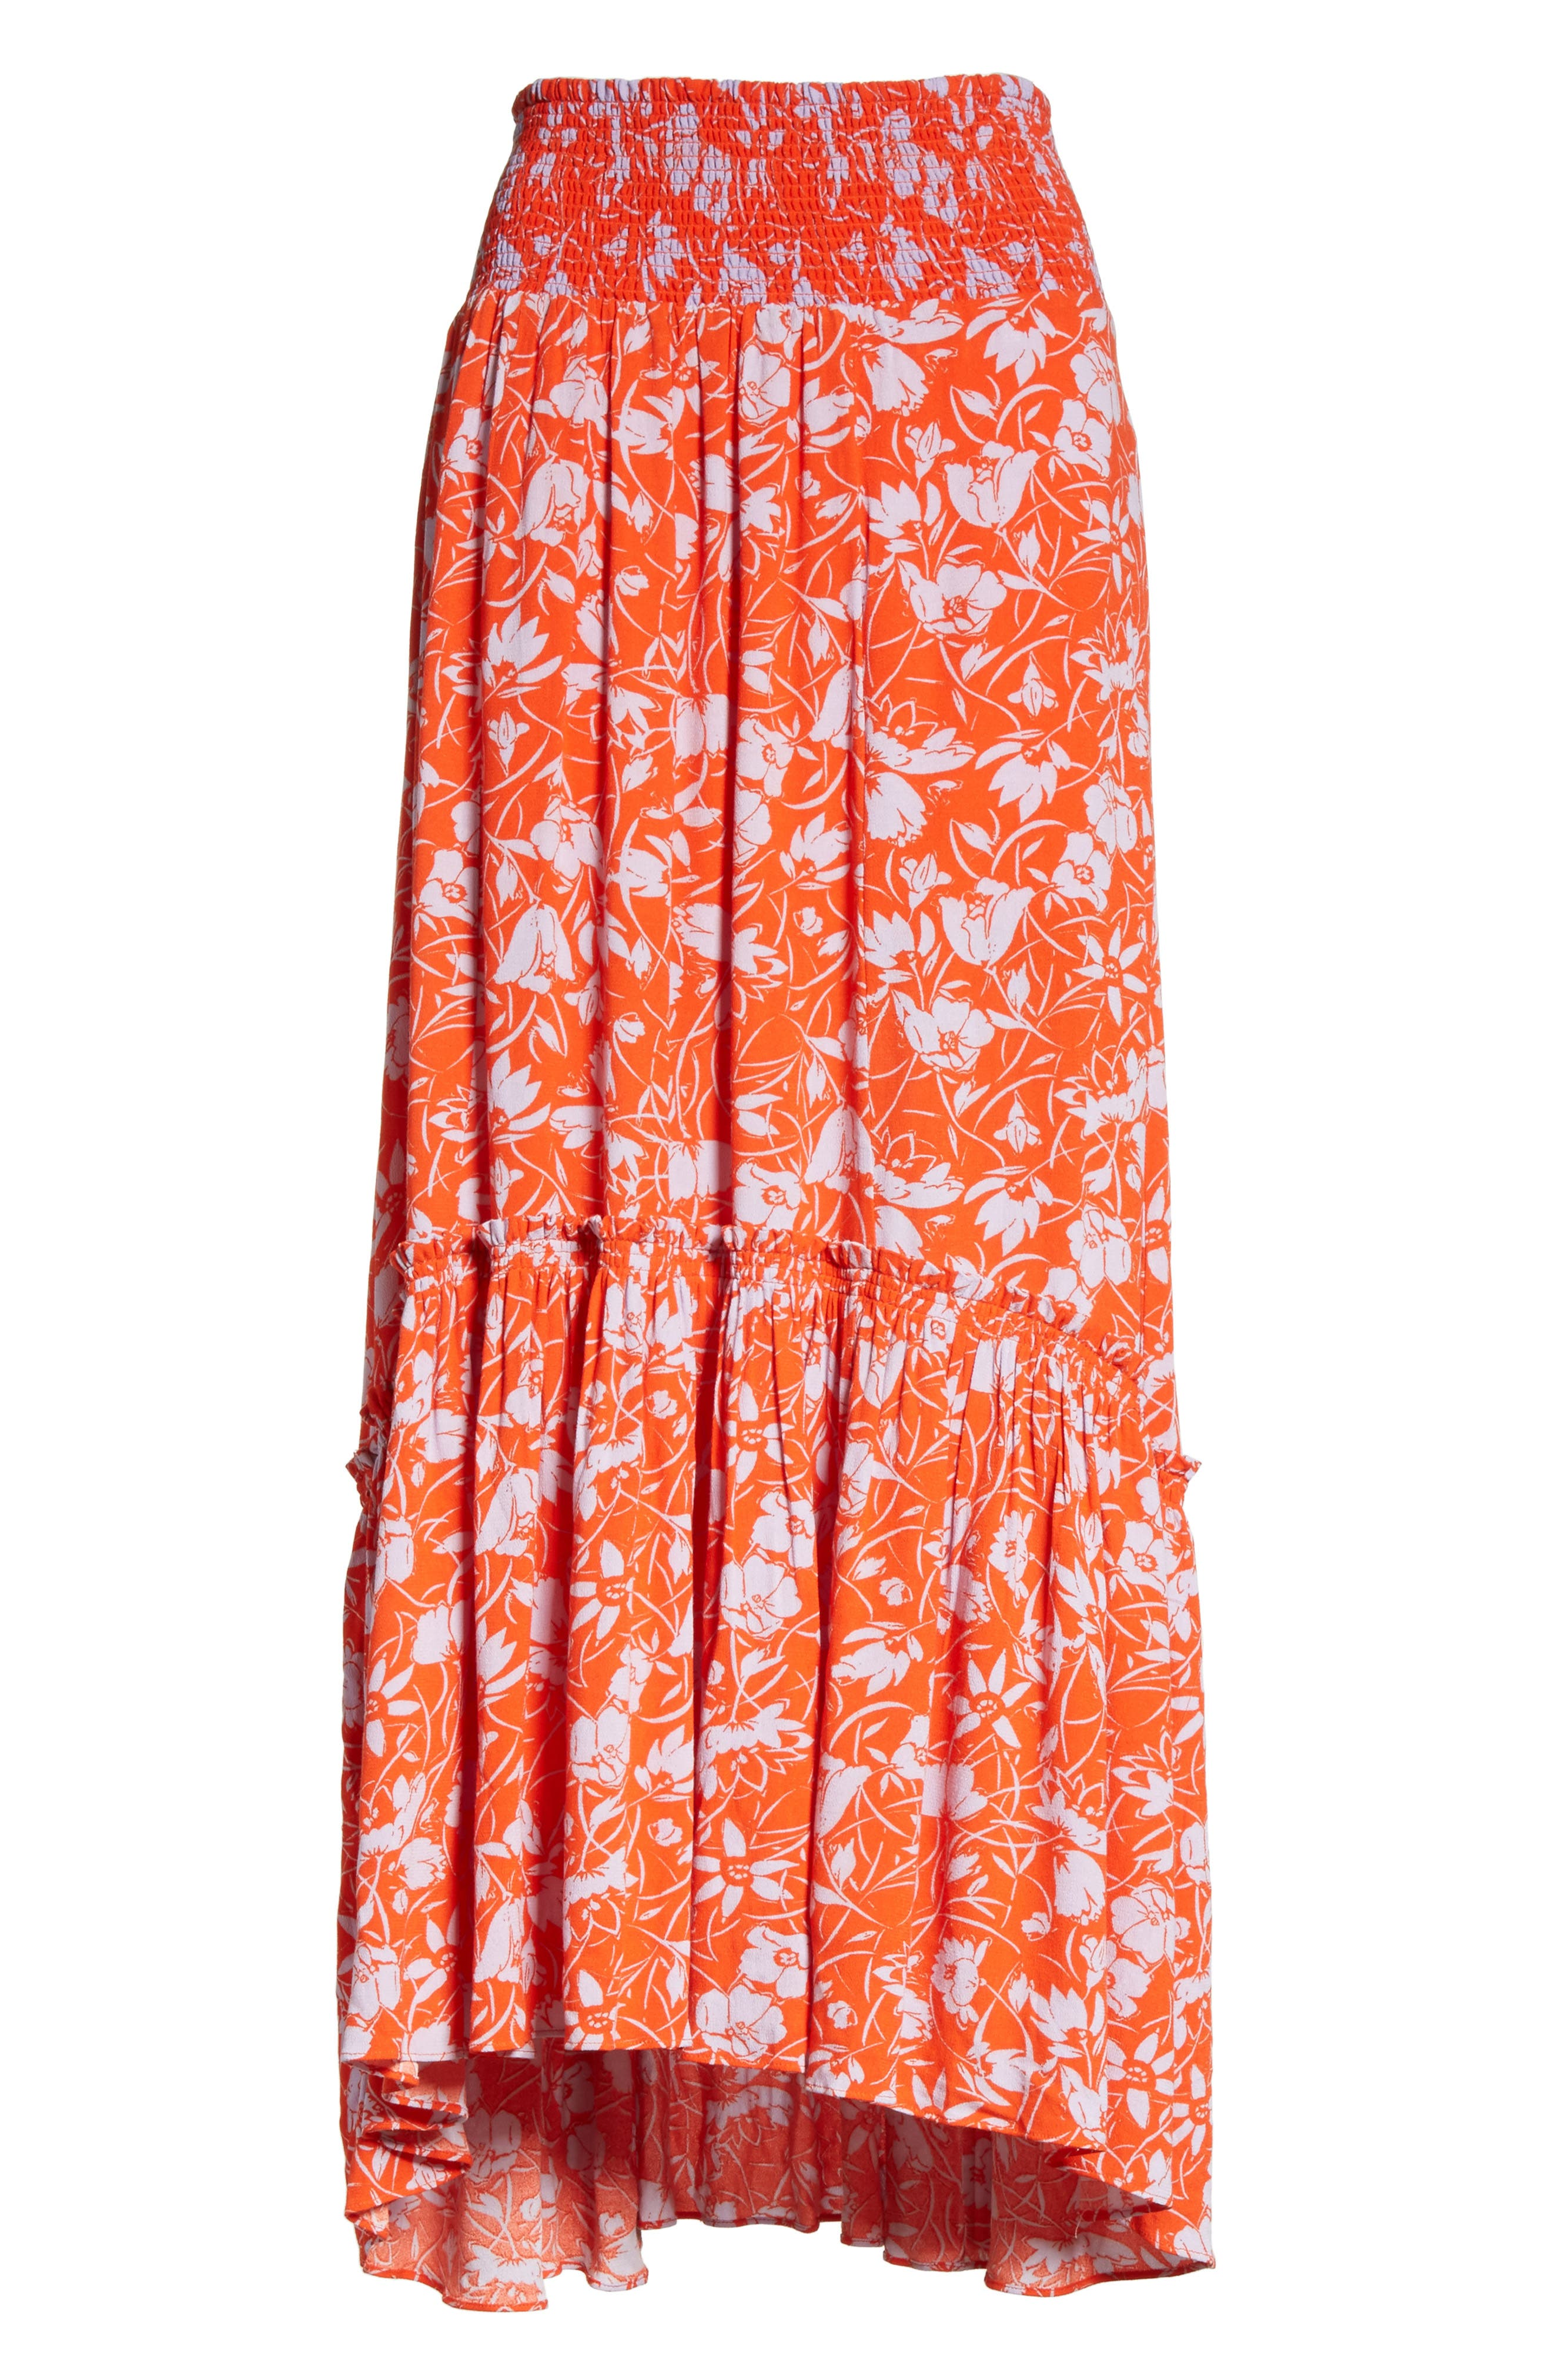 Way of the Wind Print Maxi Skirt,                             Alternate thumbnail 6, color,                             600